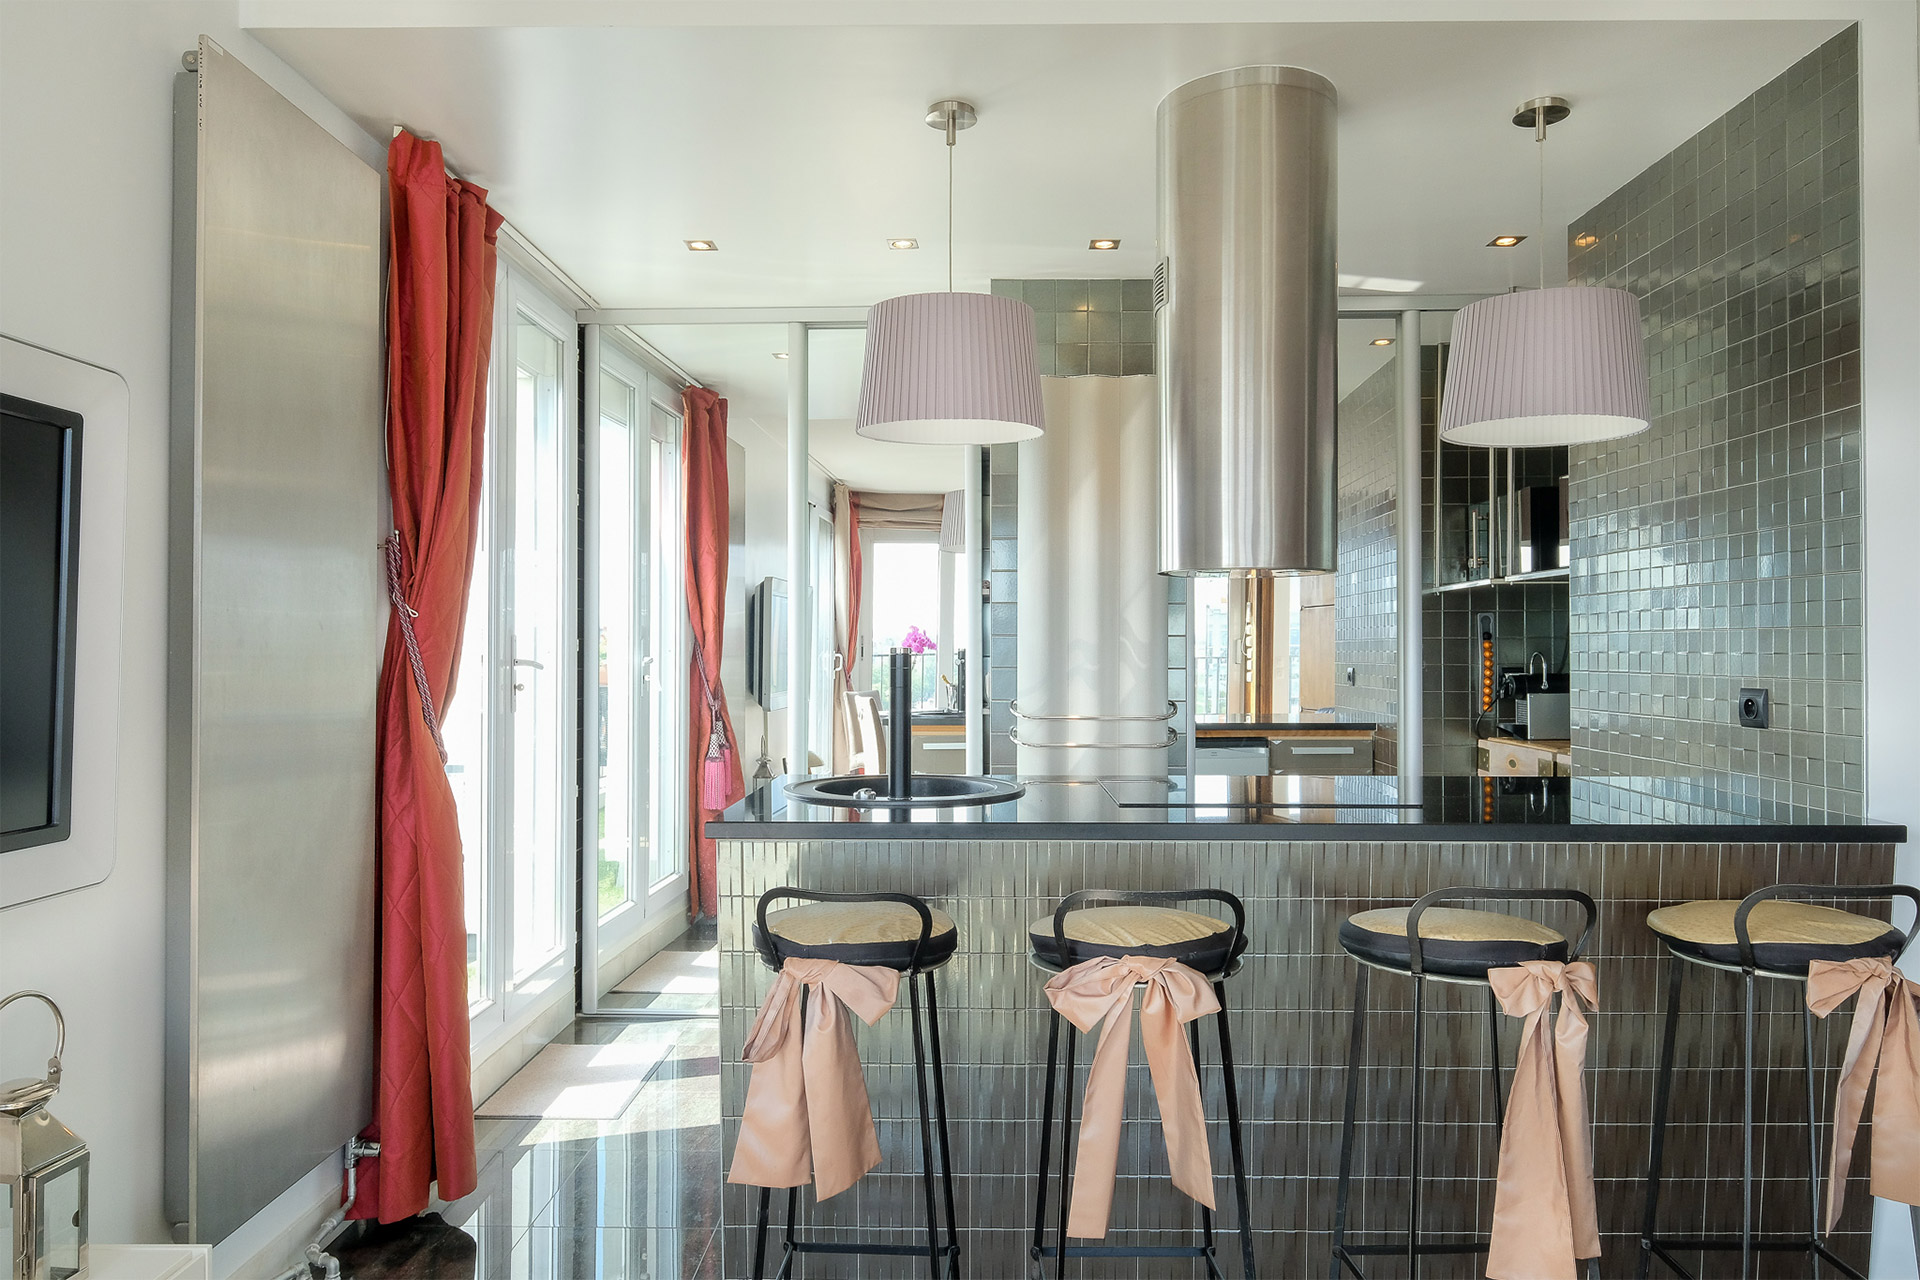 Bar stools along the kitchen island for casual dining at the Bordeneuve Paris Perfect rental